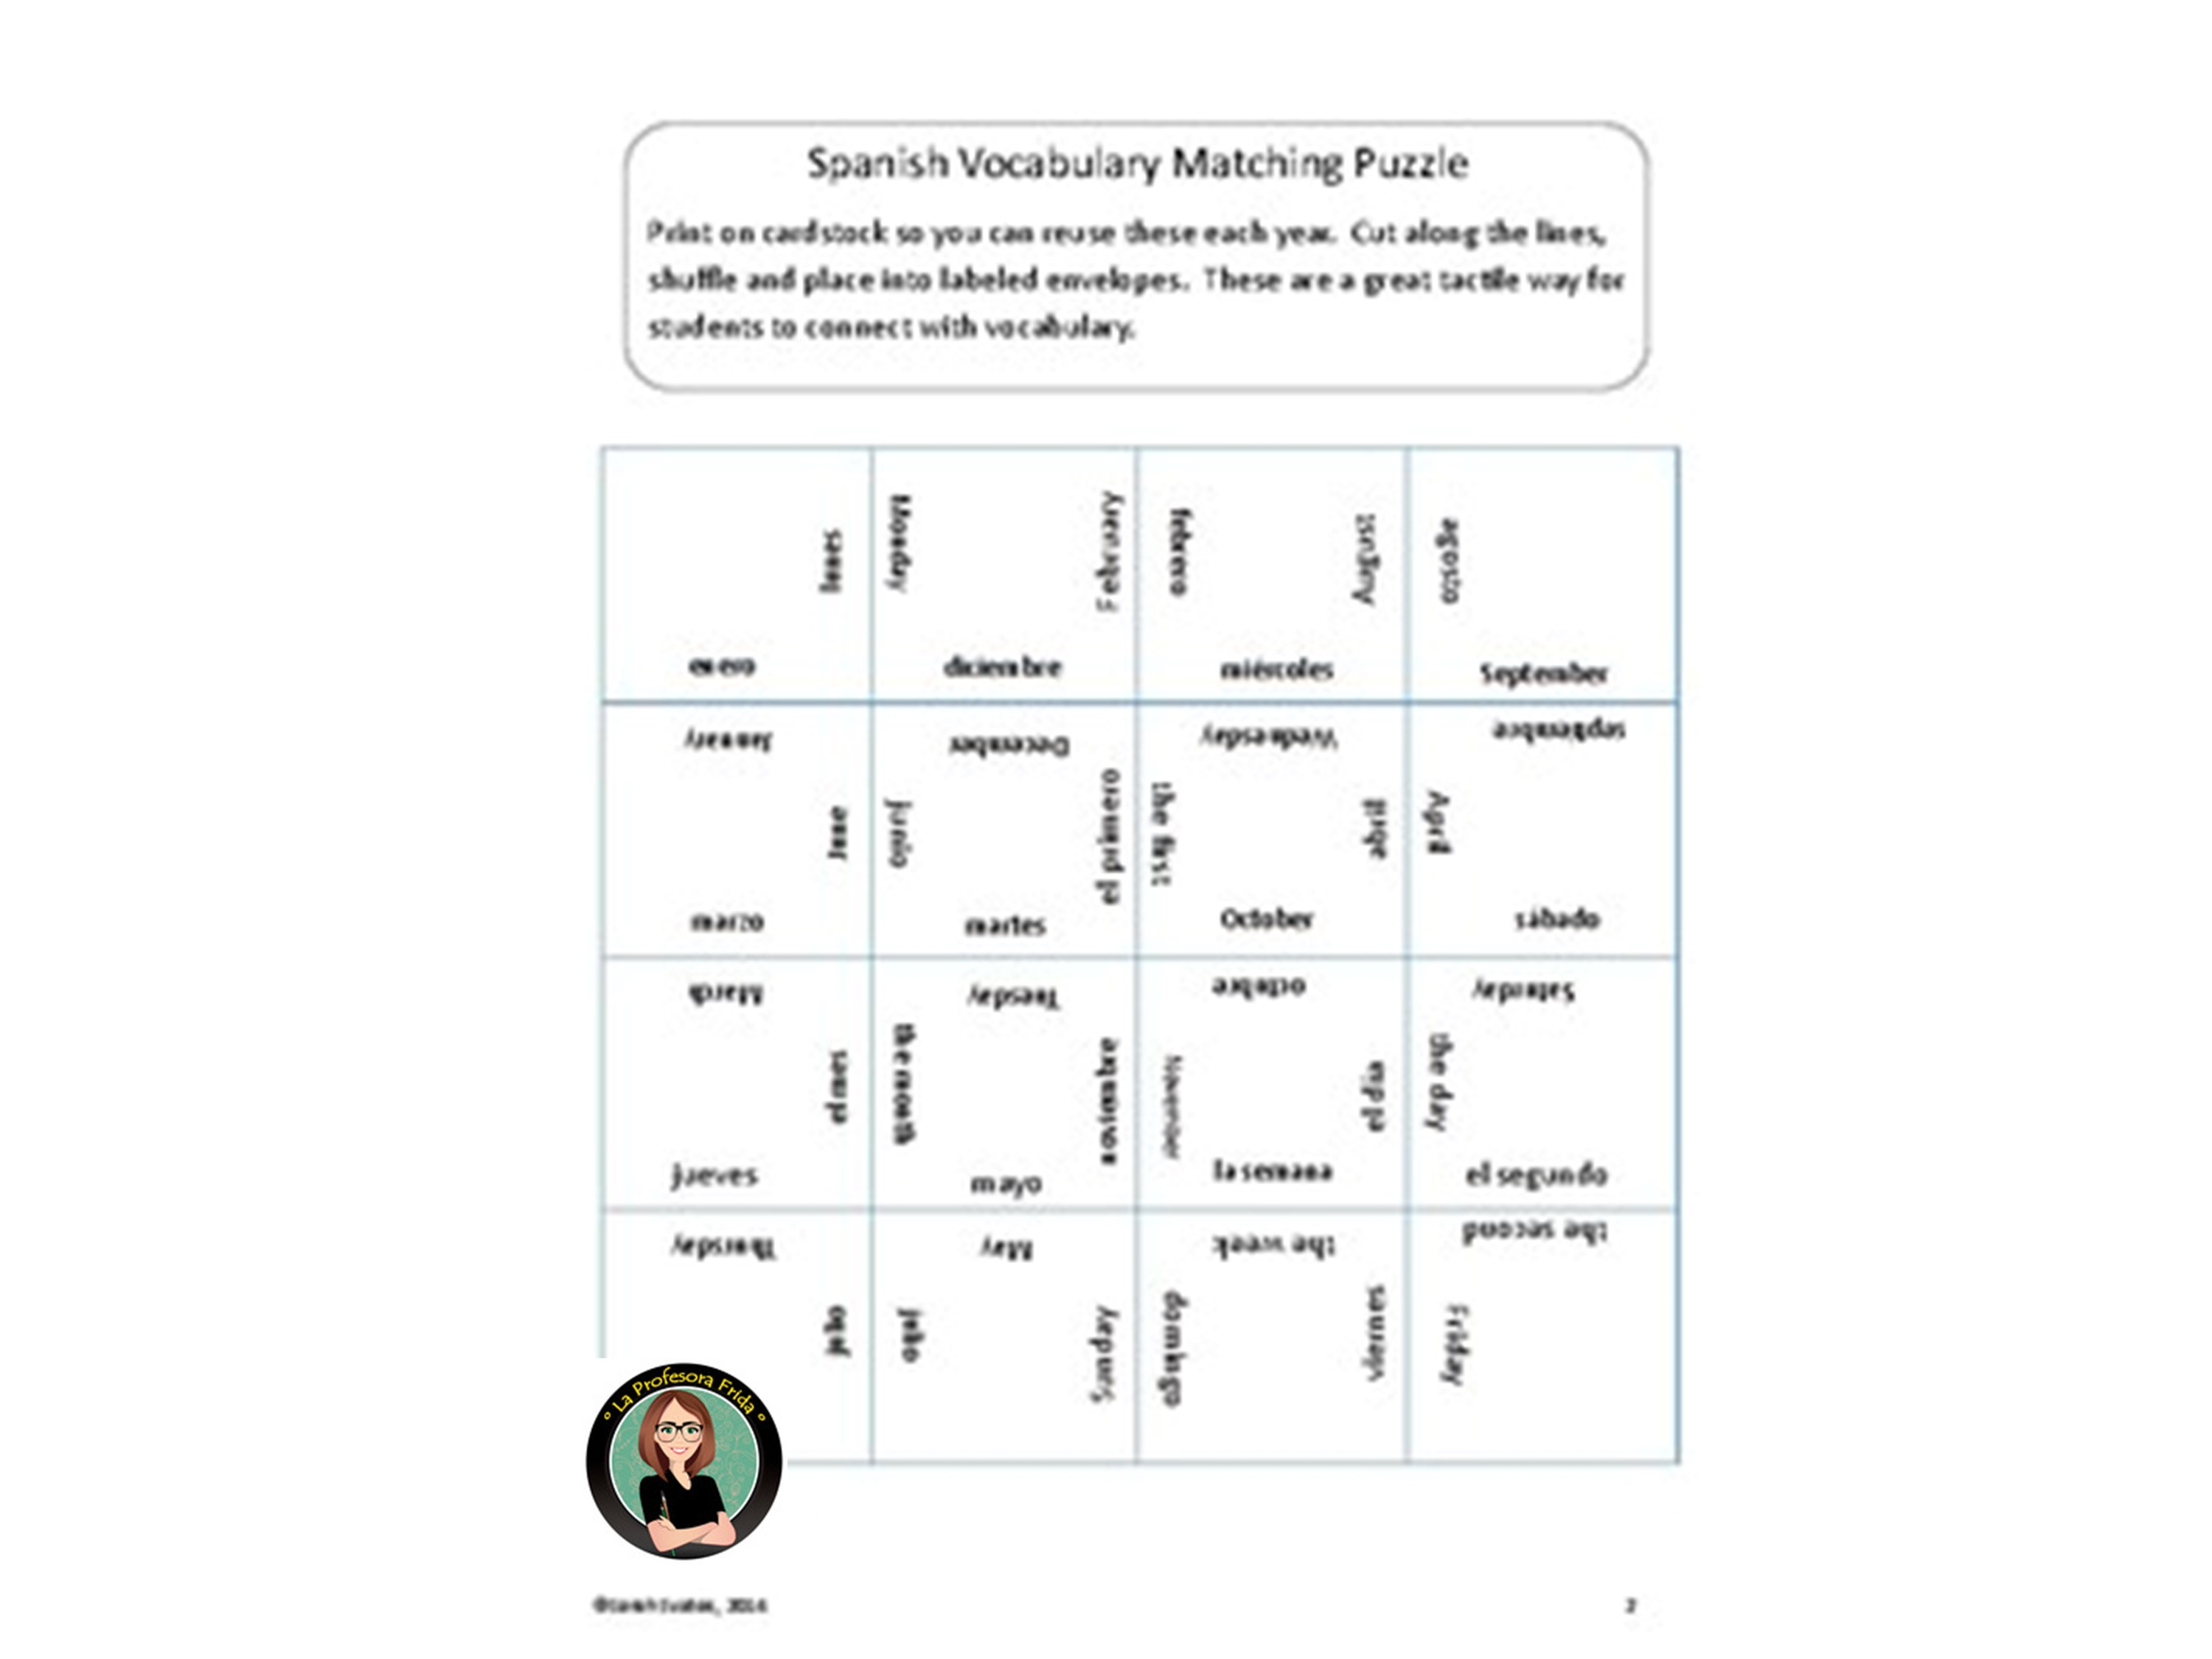 Spanish puzzle, Spanish days of the week, Spanish months of the year, matching square